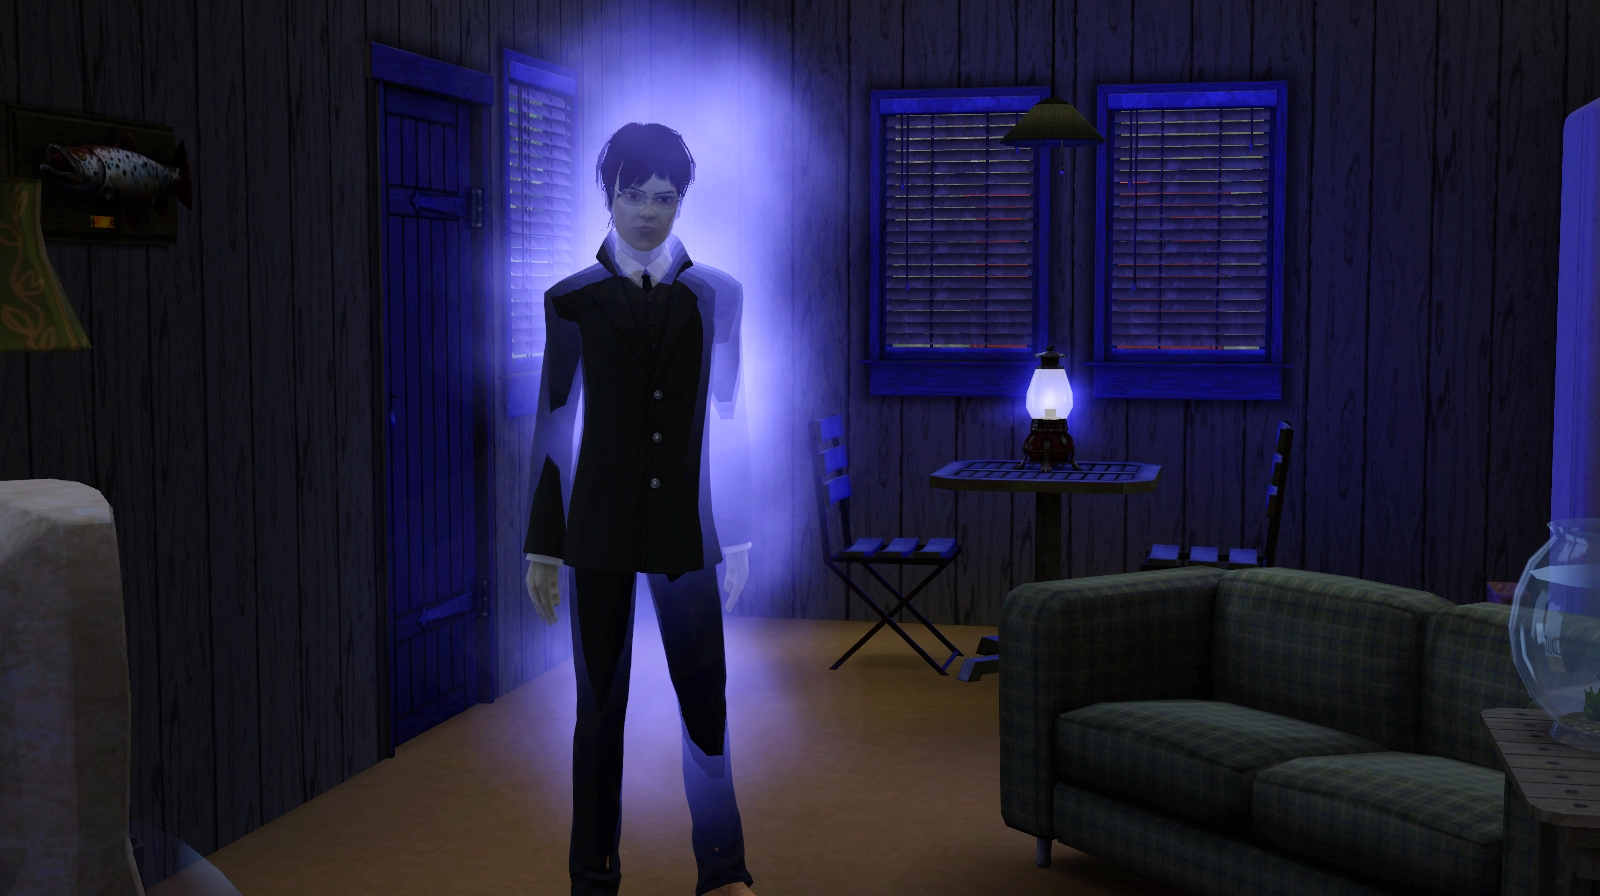 & Spectrum Mood Lamp | The Sims Wiki | FANDOM powered by Wikia azcodes.com